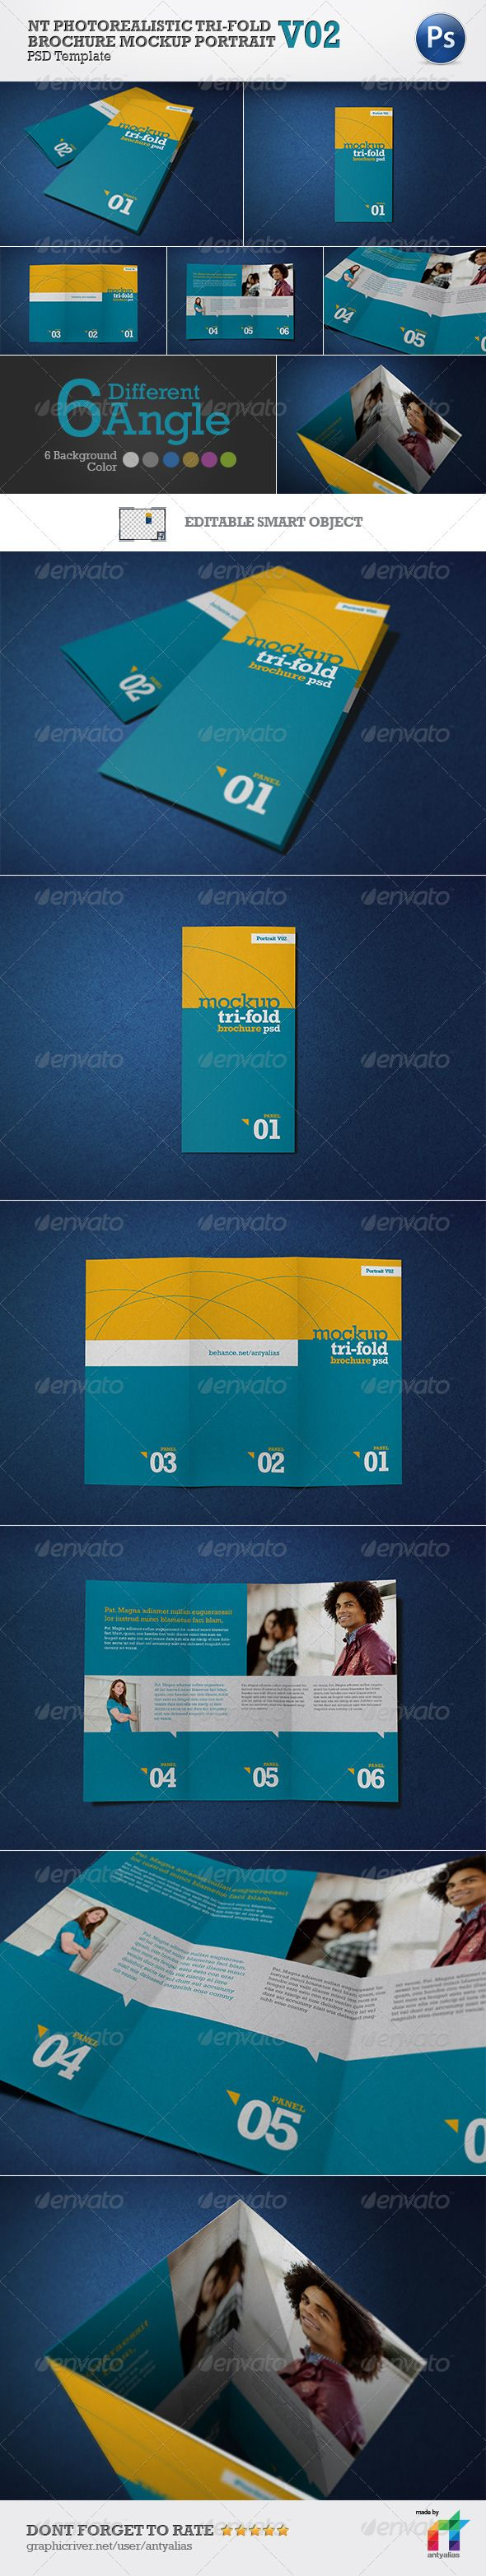 NT Photorealistic Tri-Fold Brochure Mockup - V02  #GraphicRiver              NT PHOTOREAlISTIC TRI-FOLD BROCHURE MOCKUP PORTRAIT – V02 is ideal if you are looking for a realistic mockup 3 fold brochure. it is designed based on the actual images. it perfectly match for A4 size brochure when opened and when closed 9.9cm width for each panel. There are 6 angles and 6 background to choose from. This is the standard way of folding for 3 fold brochure. No need to waste time, simply edit the…